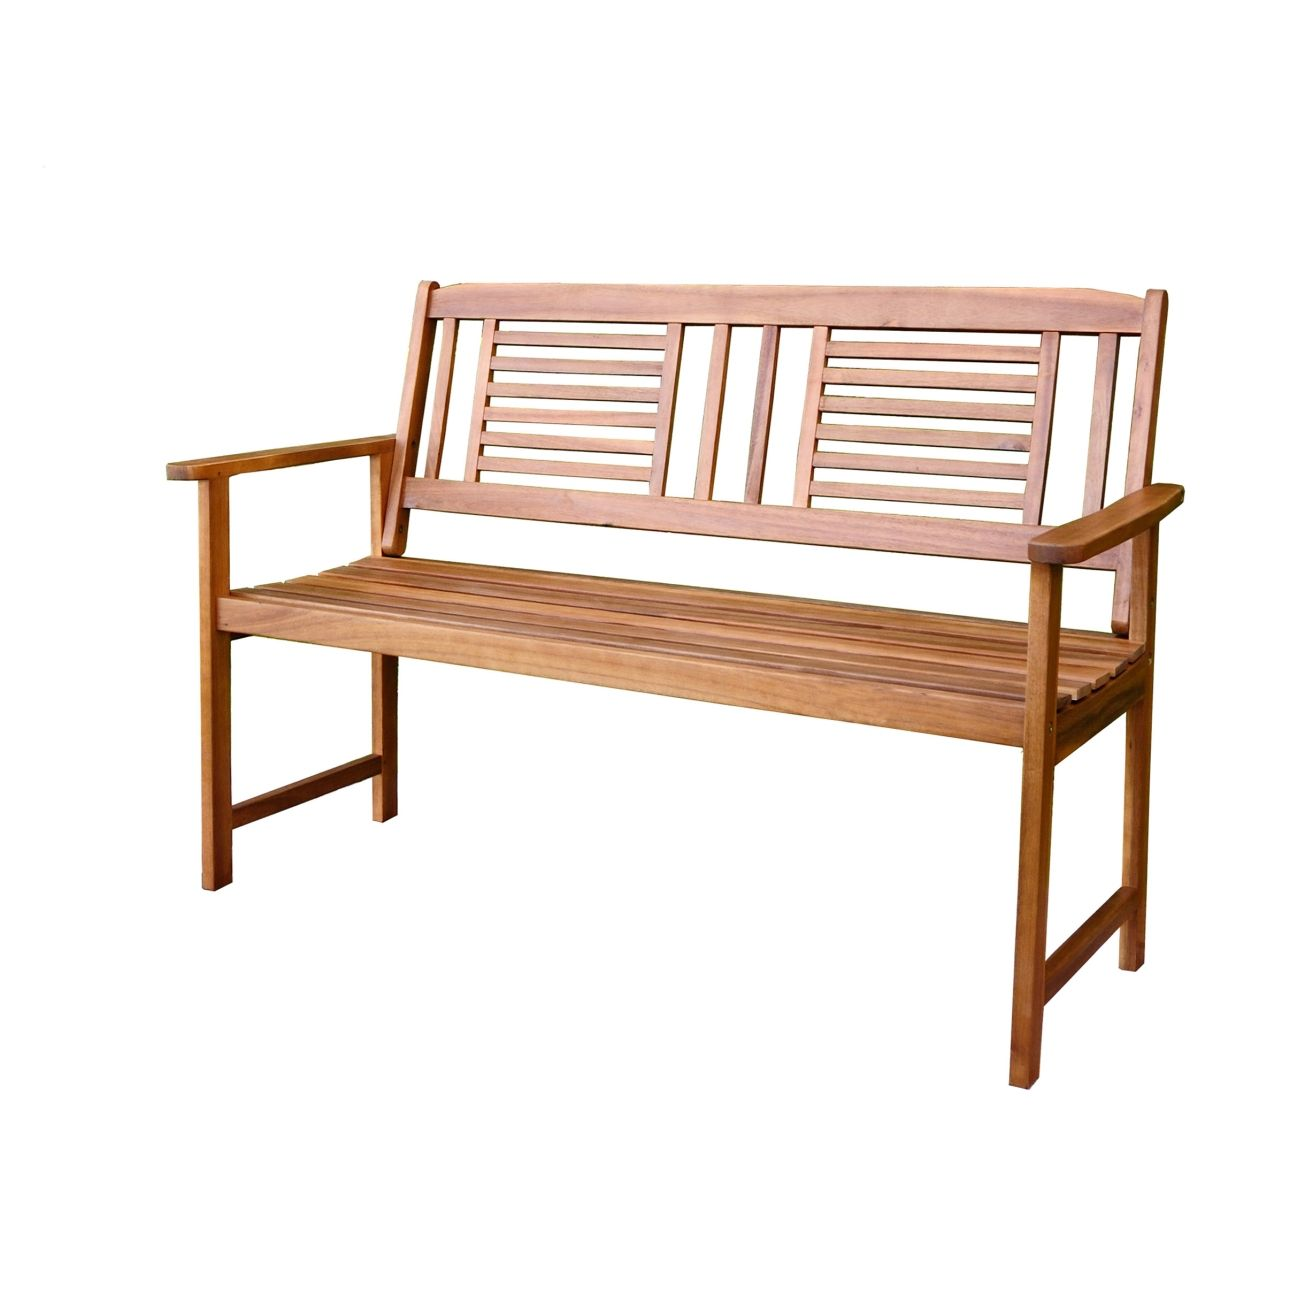 Living Accents 2 Seat Wooden Bench   Park Benches   Ace Hardware